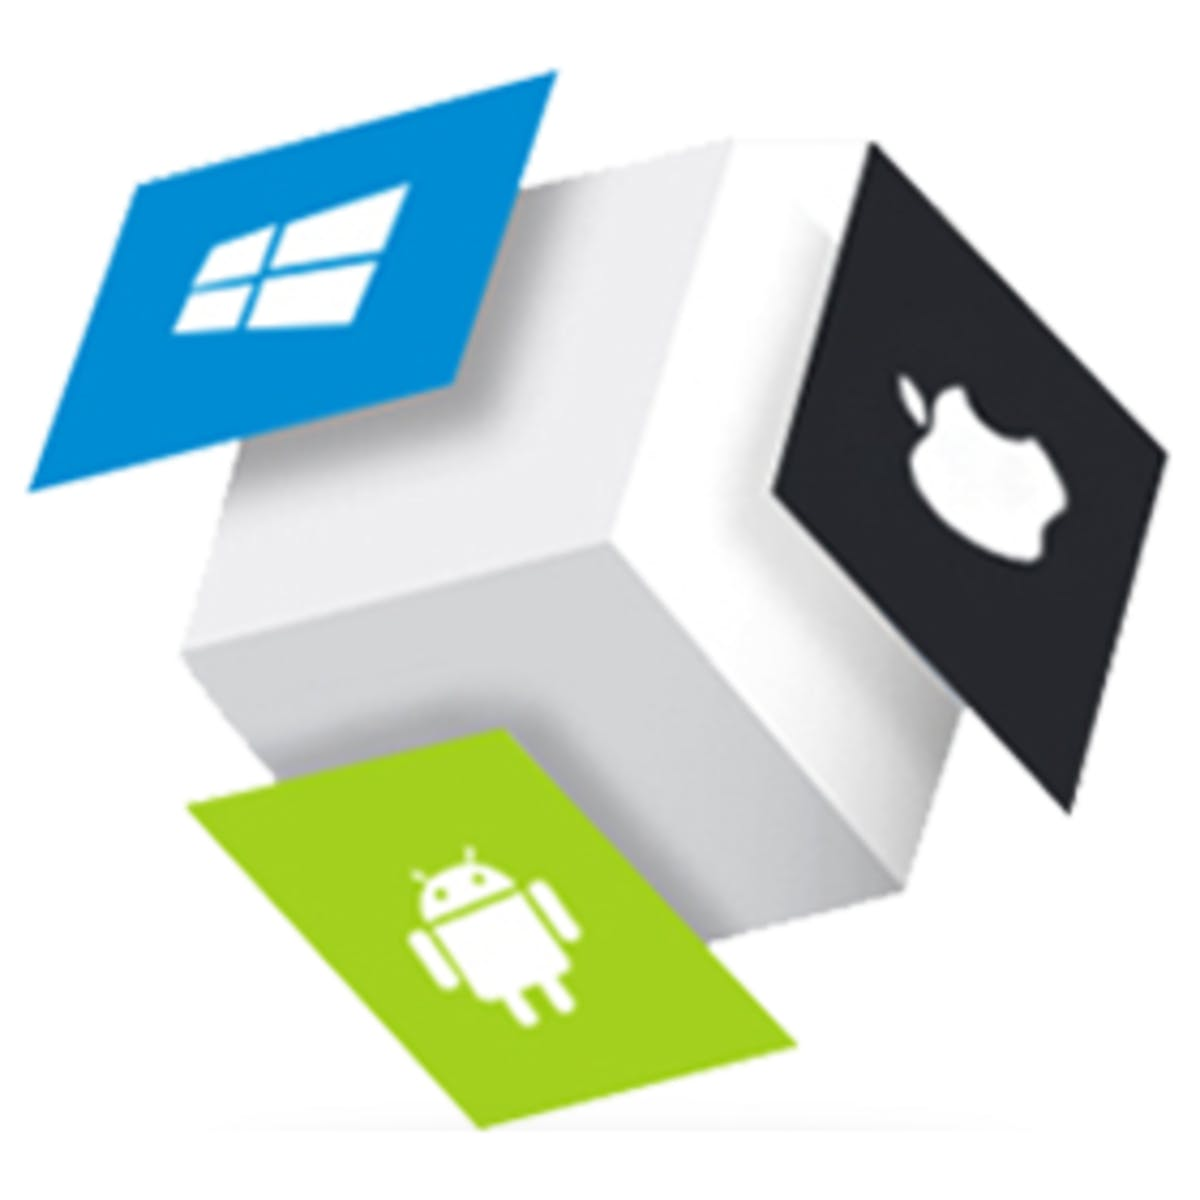 Multiplatform Mobile App Development with Web Technologies